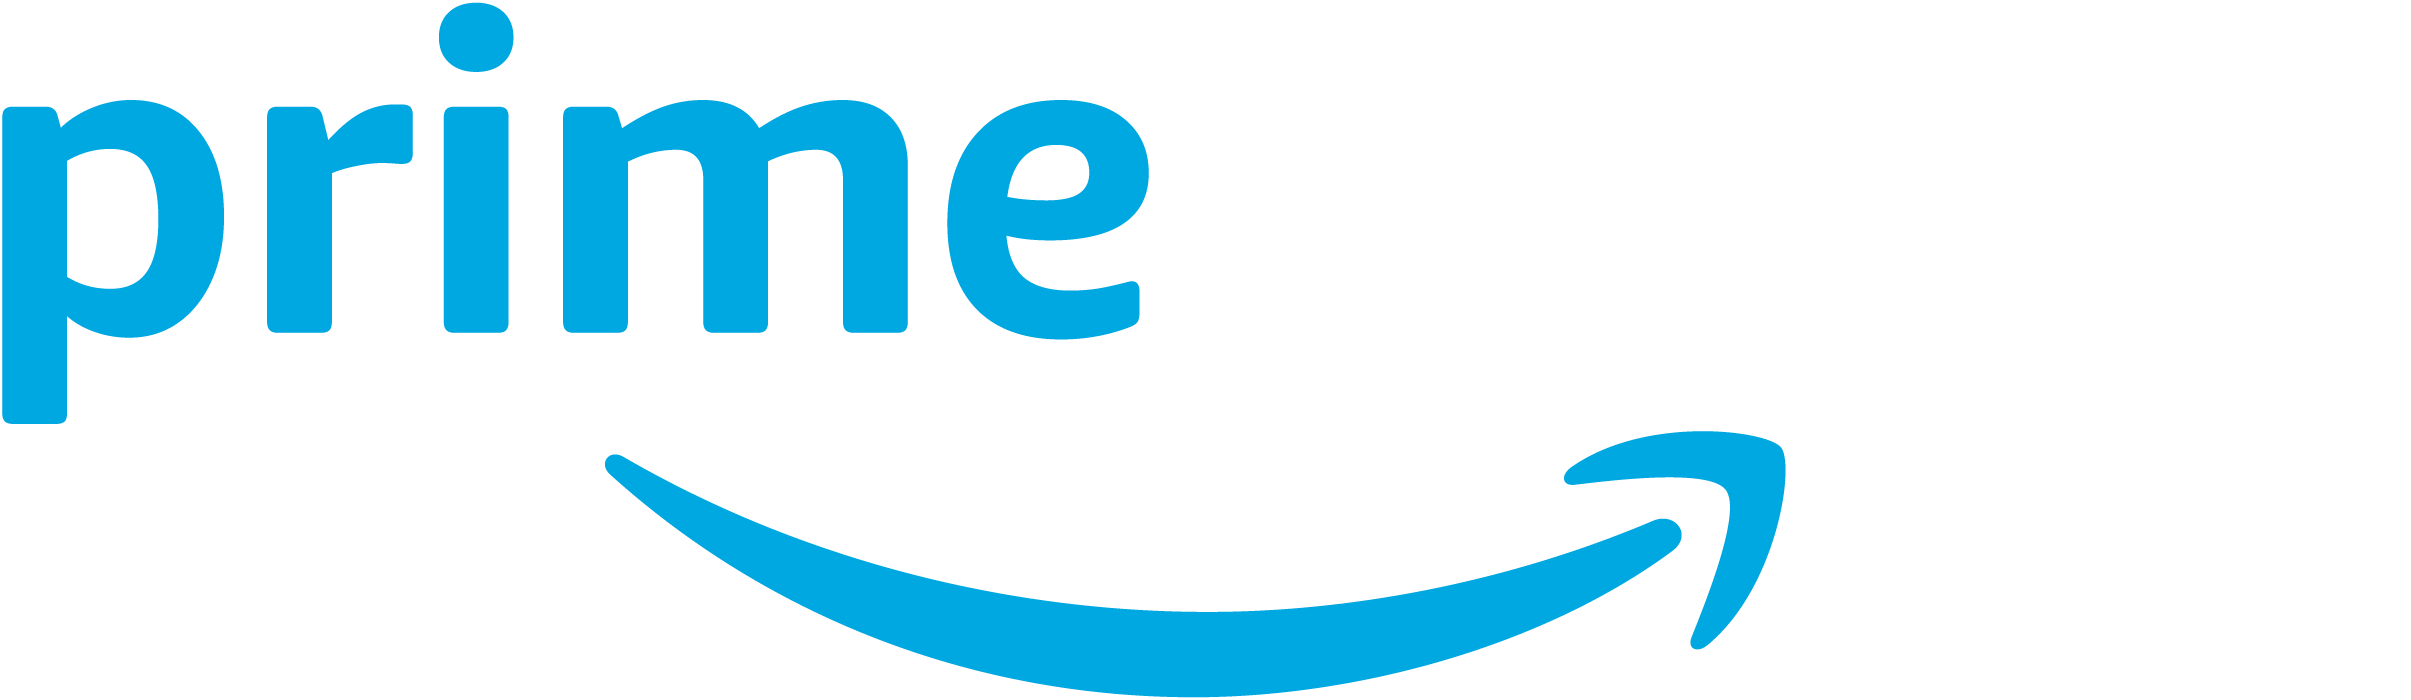 Amazon prime music png. Photos superepus news